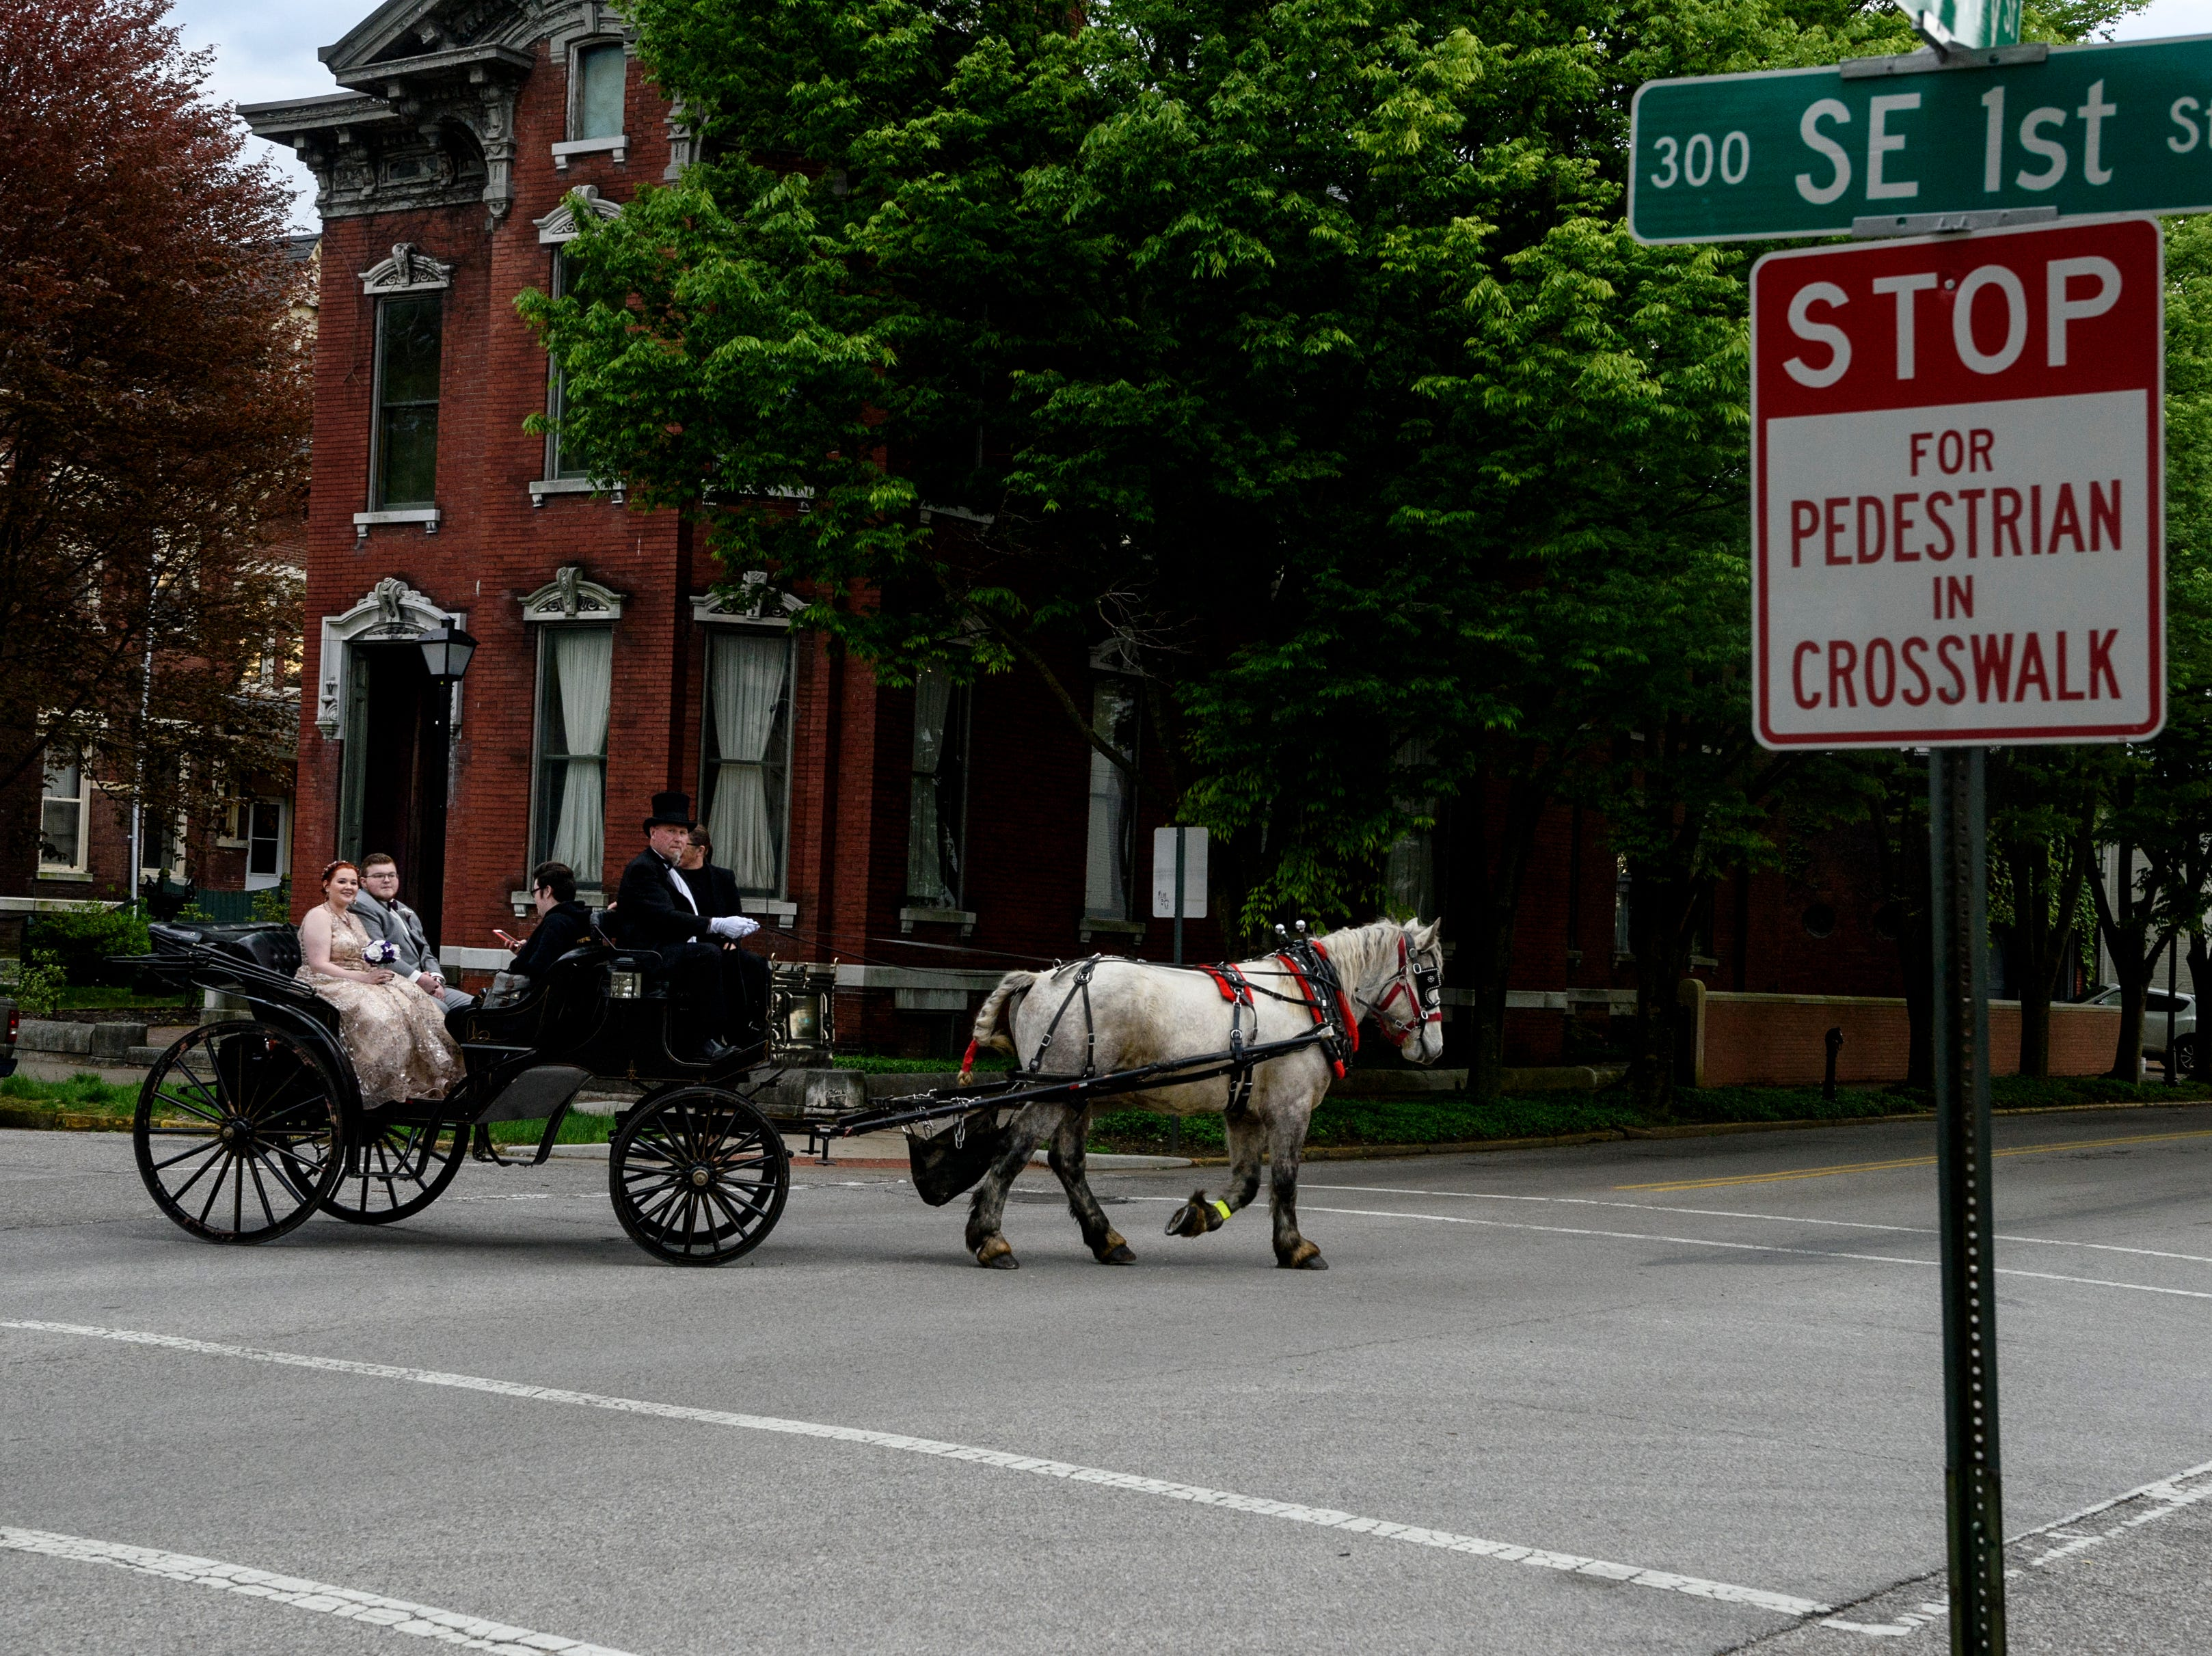 Randy and Sheila O'Risky of Horseshoe Bend Carriage Co. lead Castle High School students Rachel Landrum, Conner Gorman and Seth Cox through the intersection of Southeast First and Cherry Streets before attending prom in downtown Evansville, Ind., Saturday, April 27, 2019. Landrum and Gorman, far right, had Cox, center, take pictures of them during their ride around downtown before being dropped off at Old National Events Plaza for the dance.